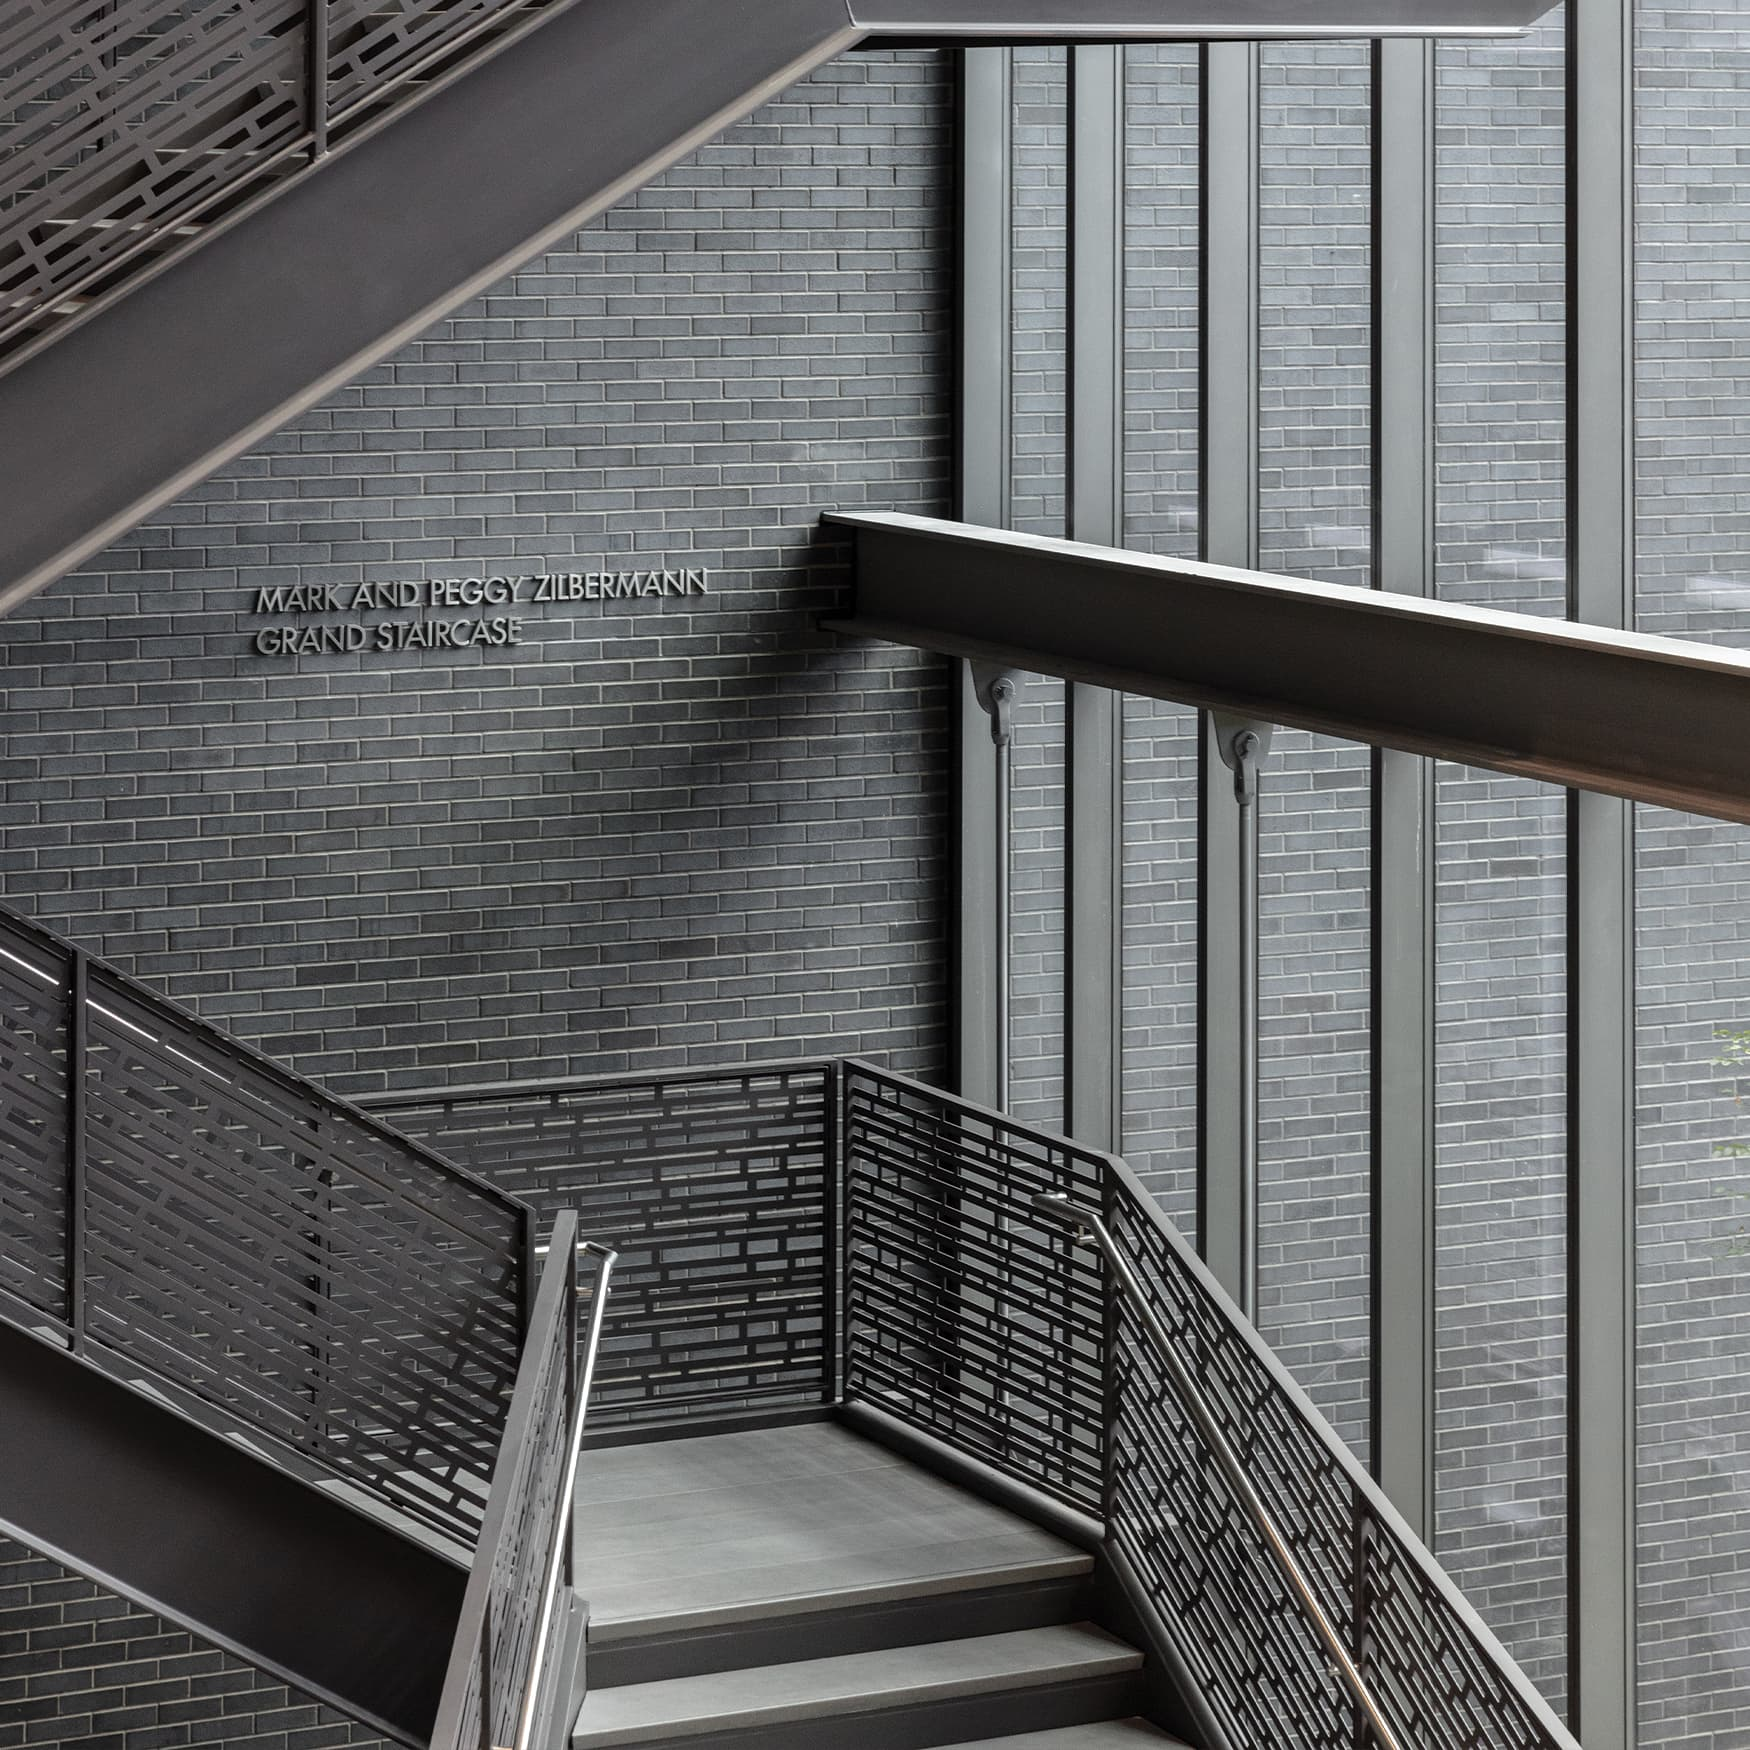 Interior Mark & Peggy Zilbermann grand staircase signage design at The Dallas Holocaust and Human Rights Museum